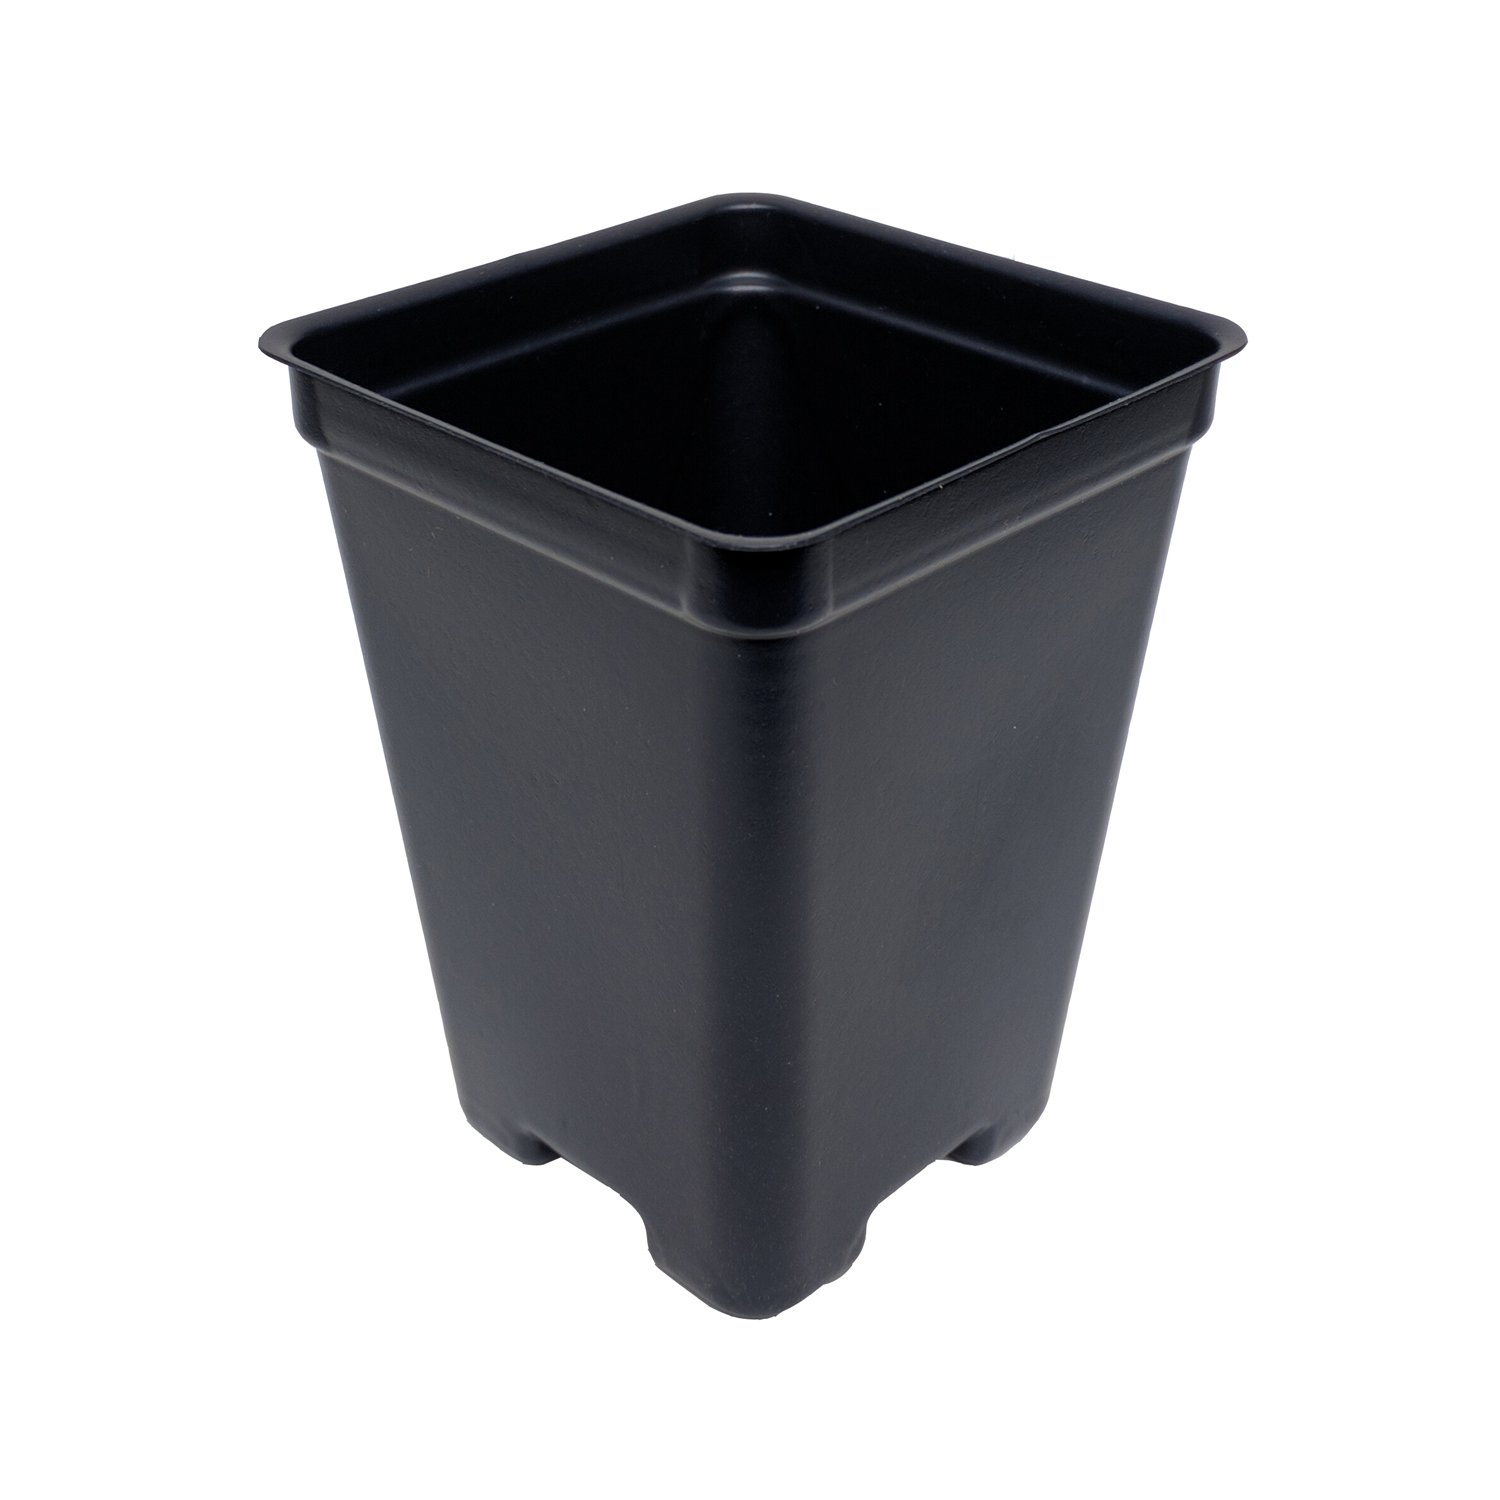 2.65 Inch Square Deep Pots - New Design - Made in the USA for Organic Gardening, Greenhouse, Nursery, Tomatoes - Recyclable (Black, 800 or 1 Case)